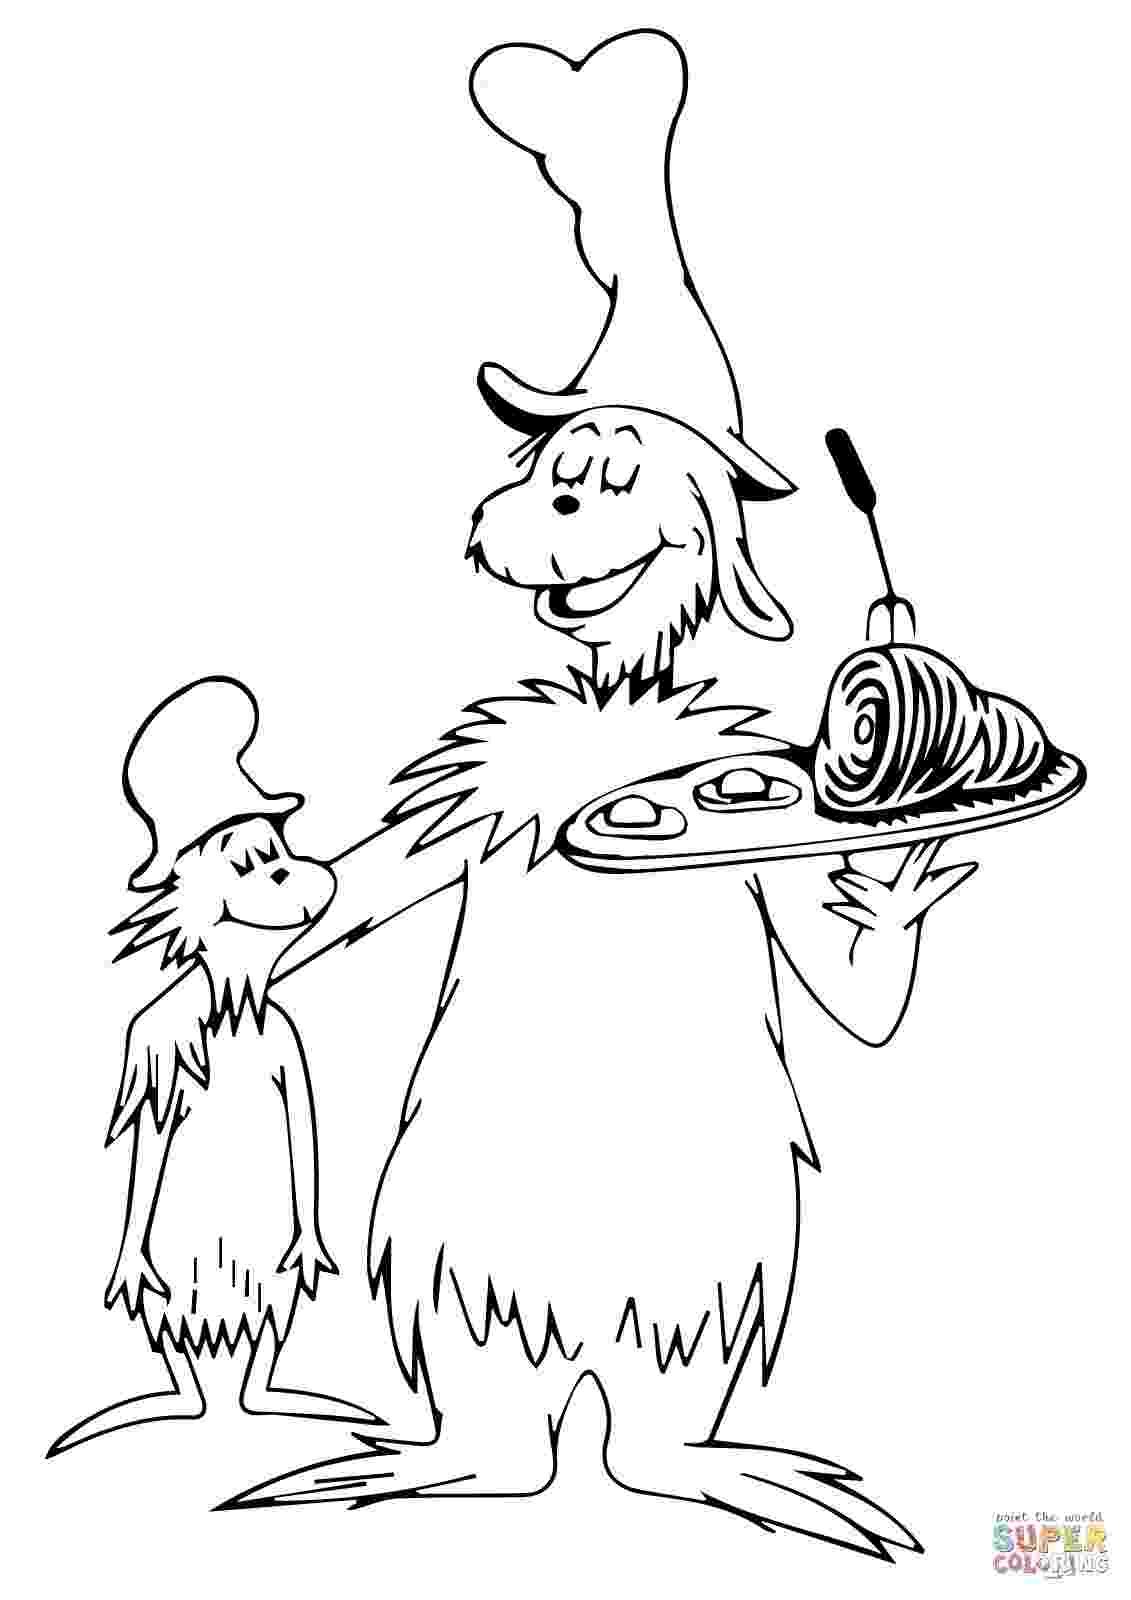 green eggs and ham coloring green eggs and ham coloring page coloring home and eggs green coloring ham